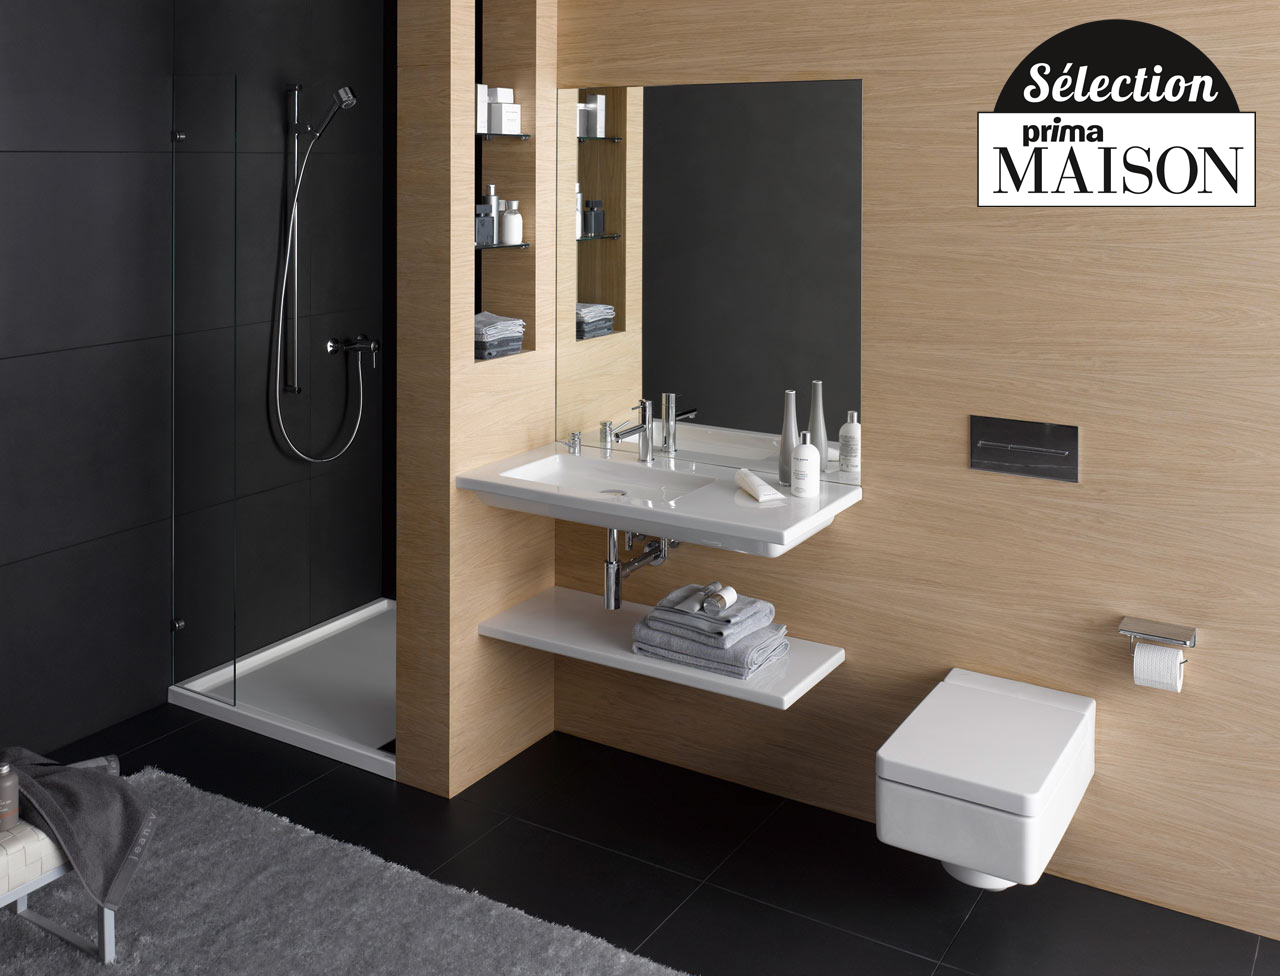 D coration salle de bain 2016 exemples d 39 am nagements for Exemple de deco salle de bain